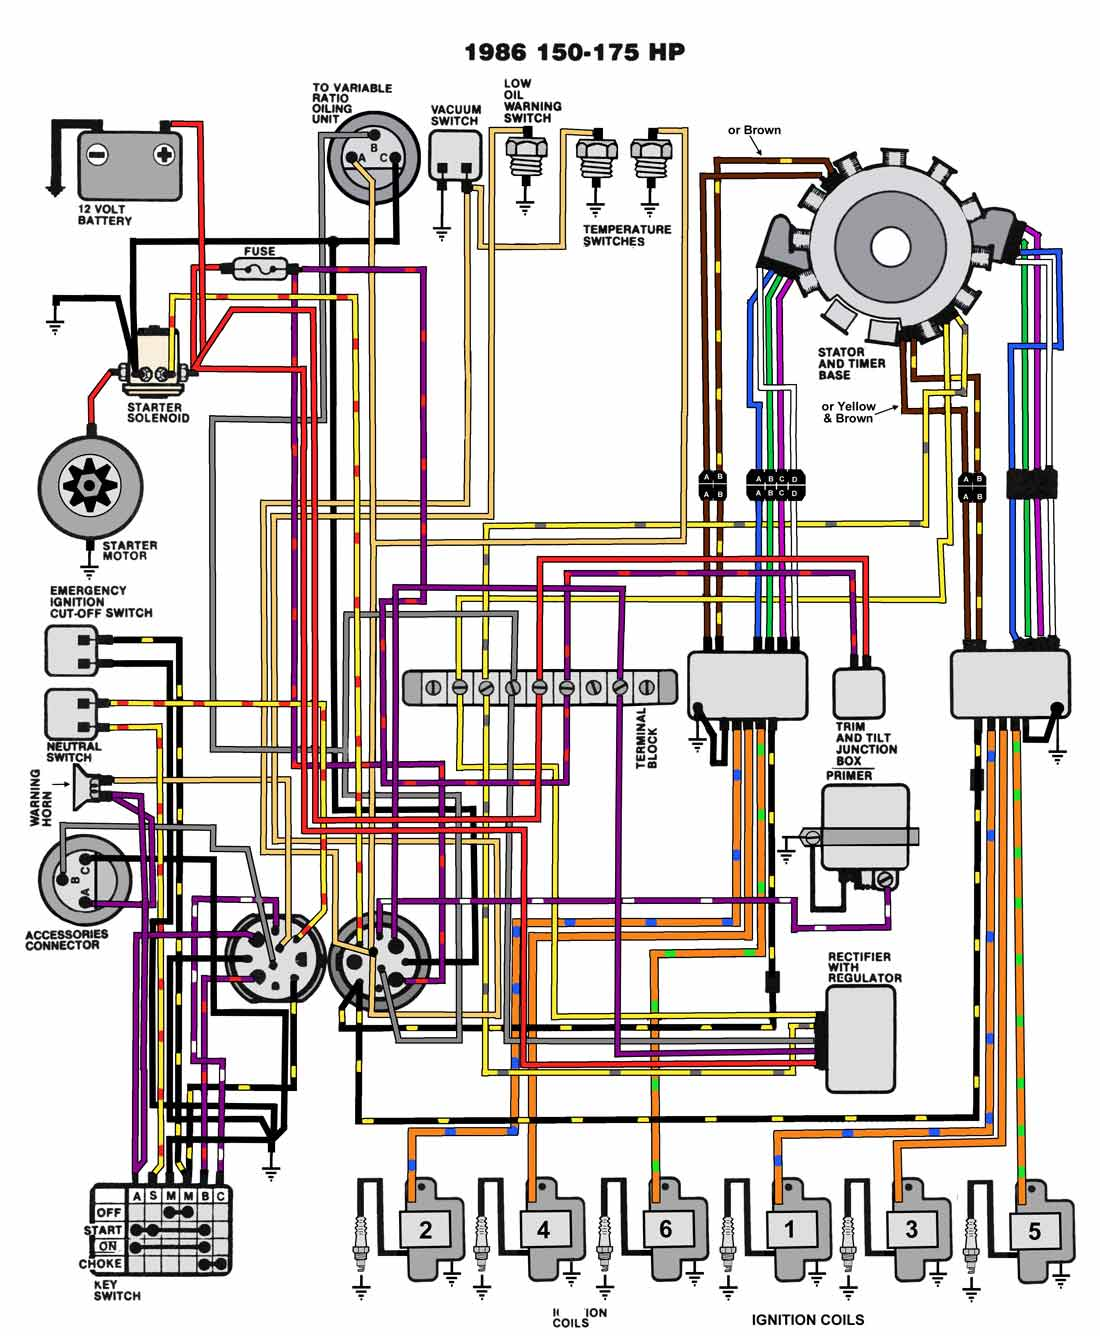 hight resolution of yamaha 200 outboard wiring schematics simple wiring diagrams rh 44 studio011 de wiring diagram yamaha blaster